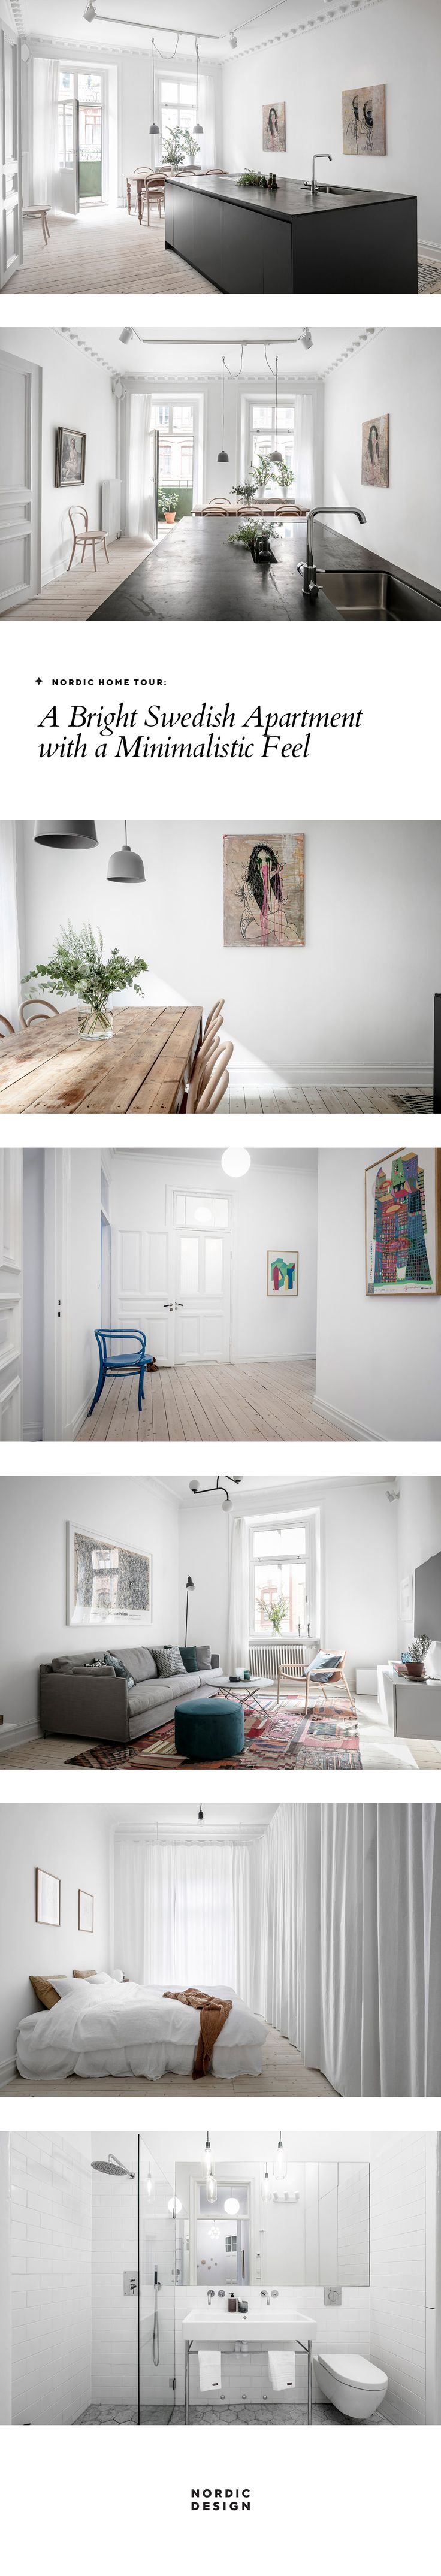 Tour a bright Swedish apartment with a minimalistic feel | nordicdesign.ca